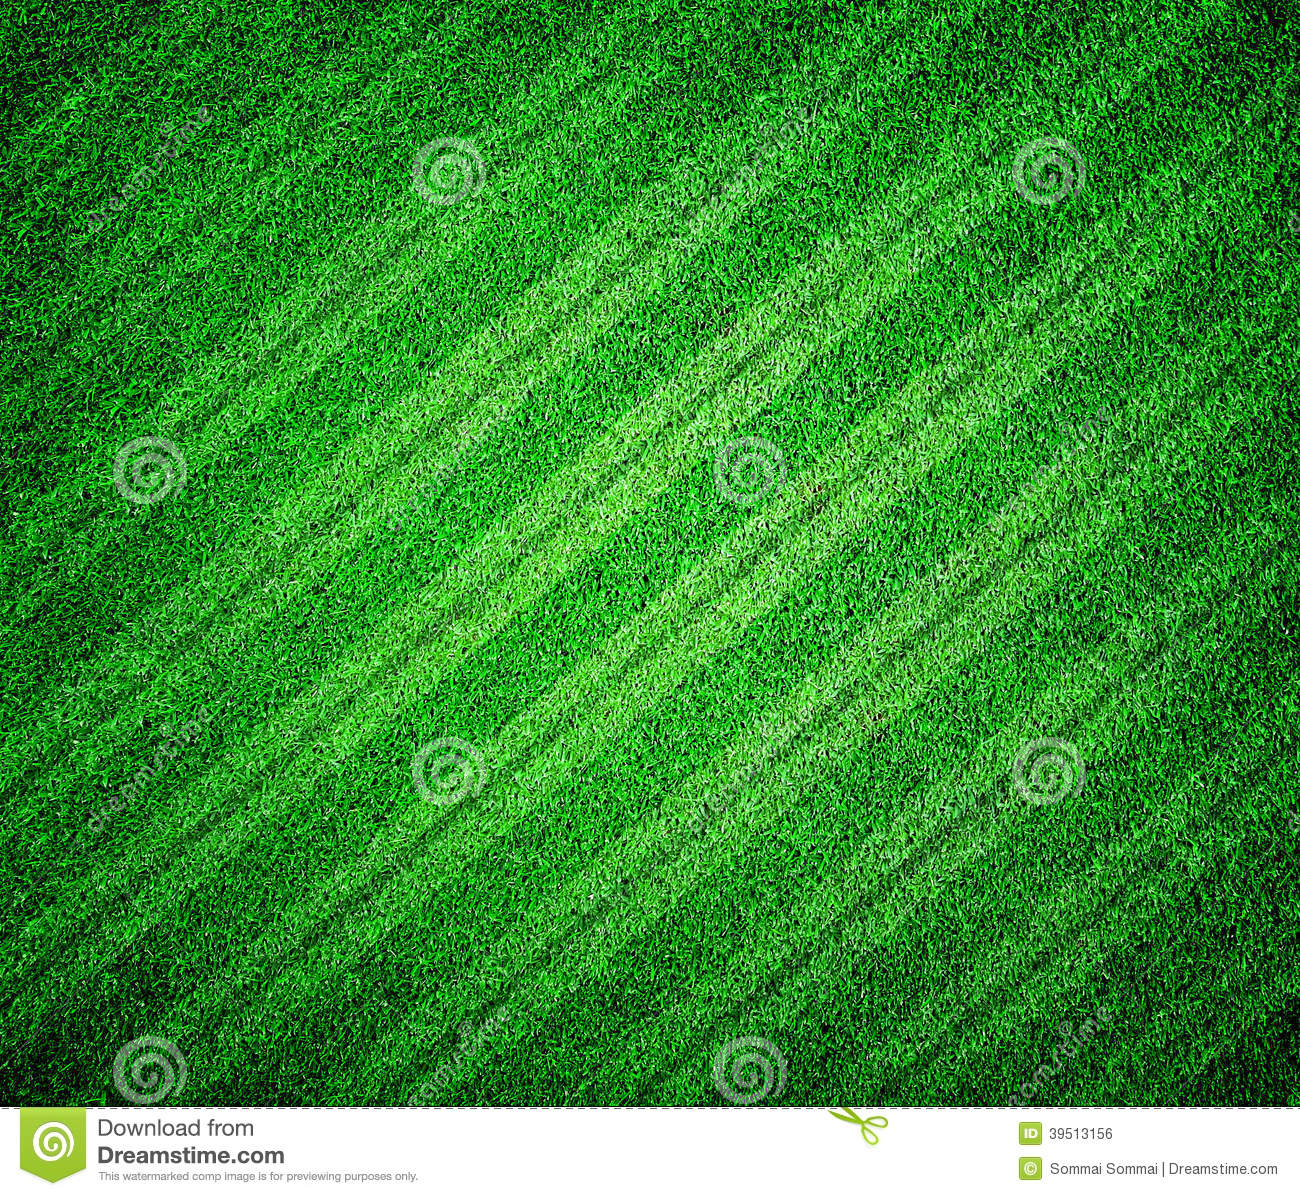 grass lined football or soccer field